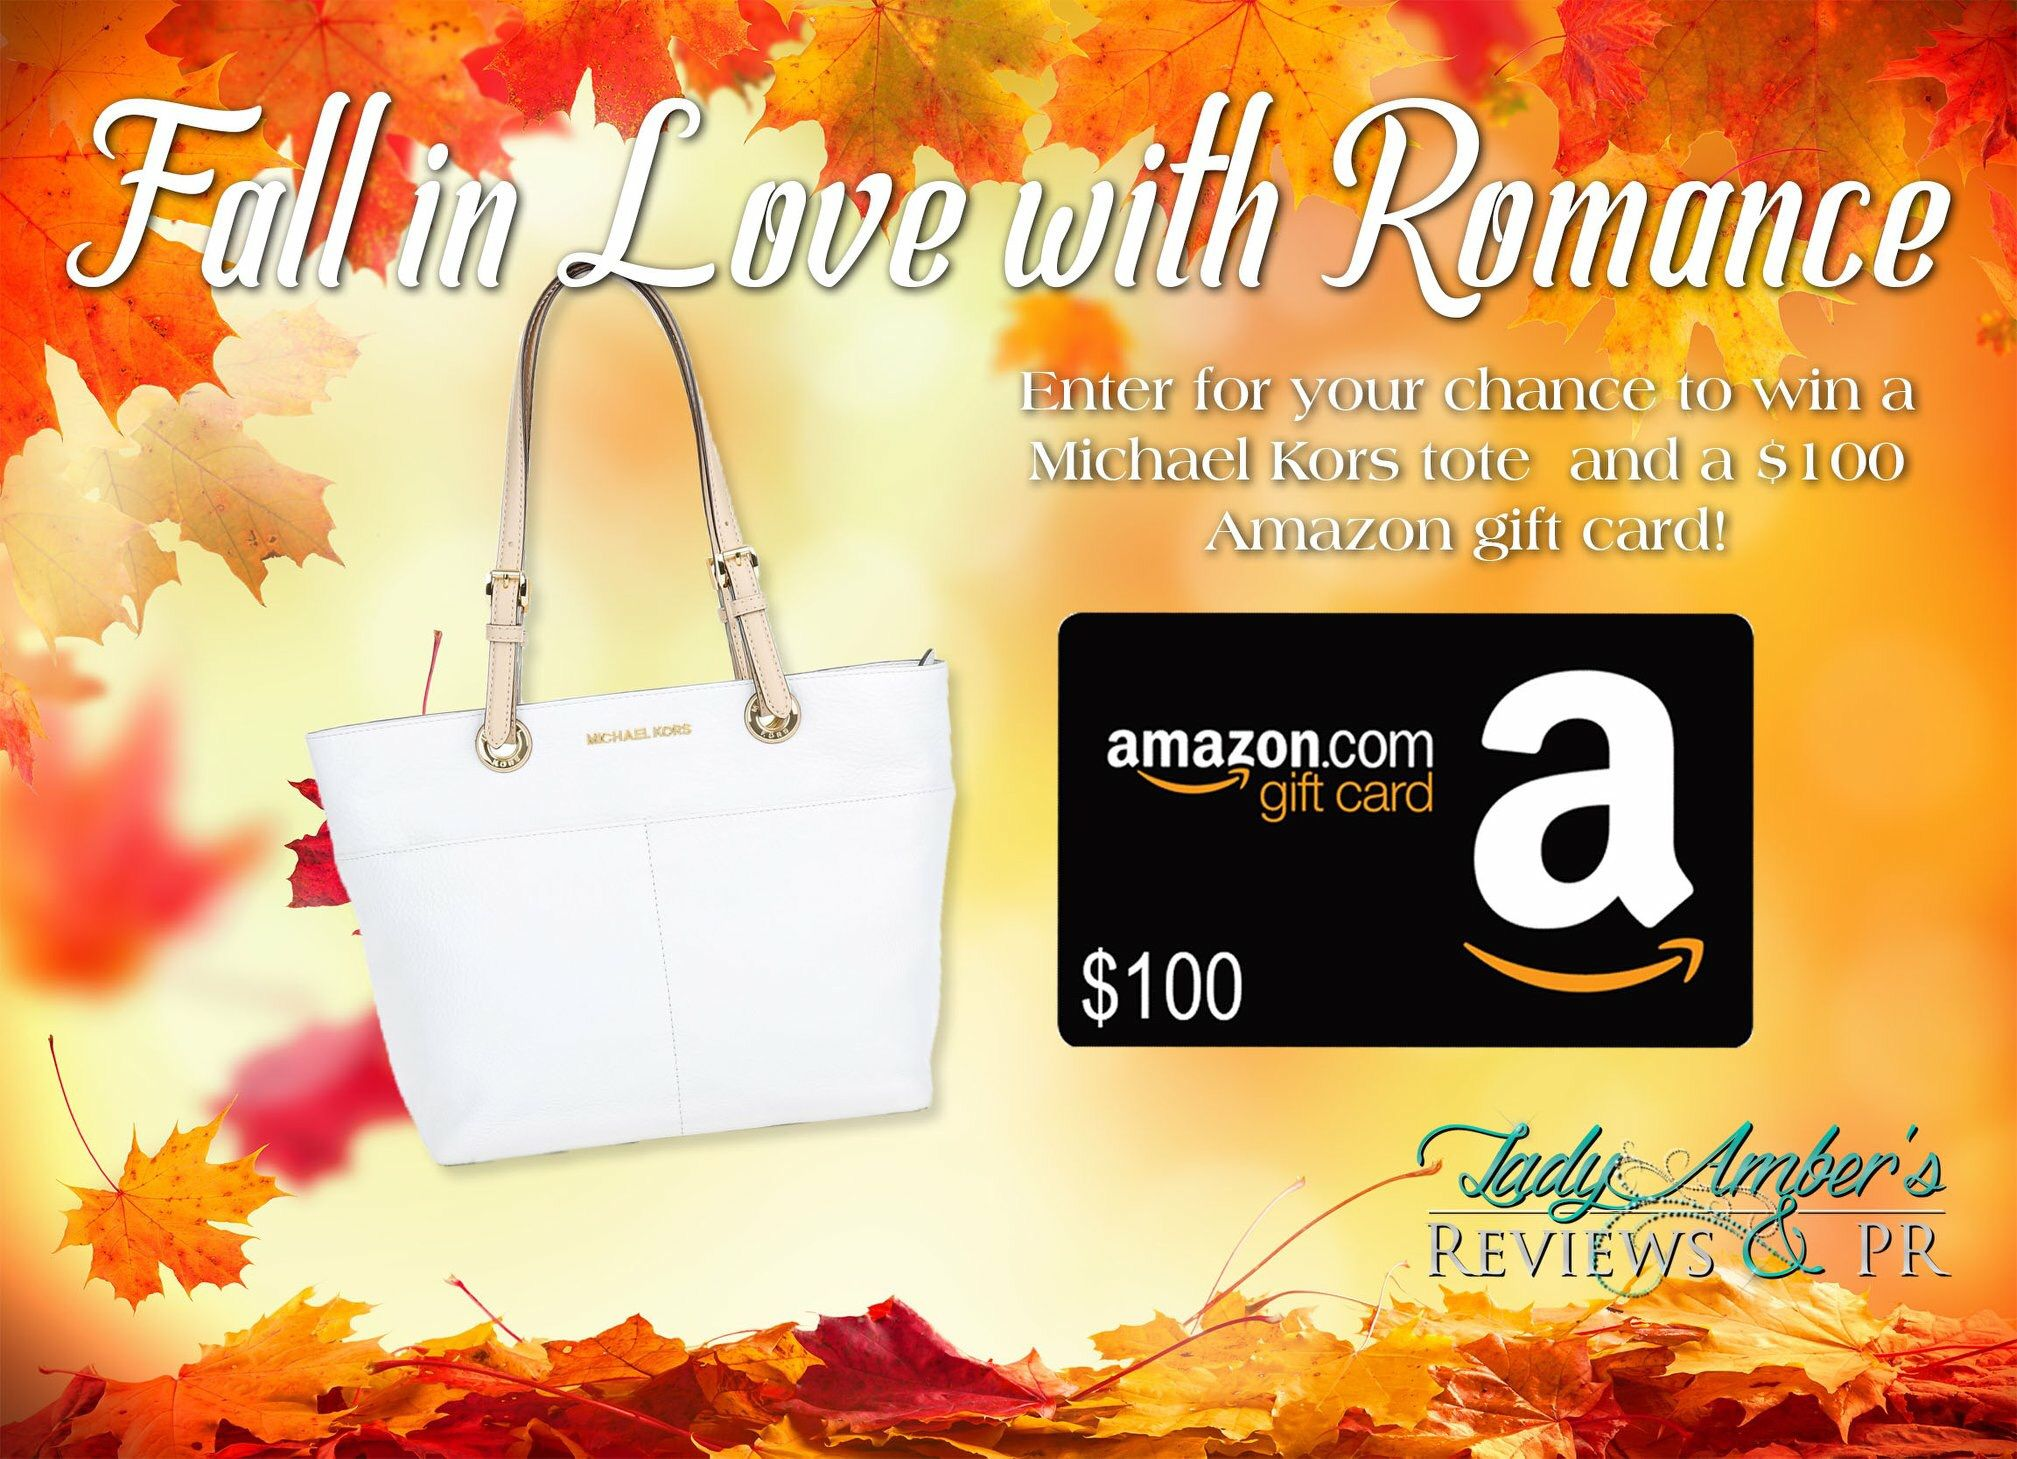 Fall in love with romance giveaway romance michael kors